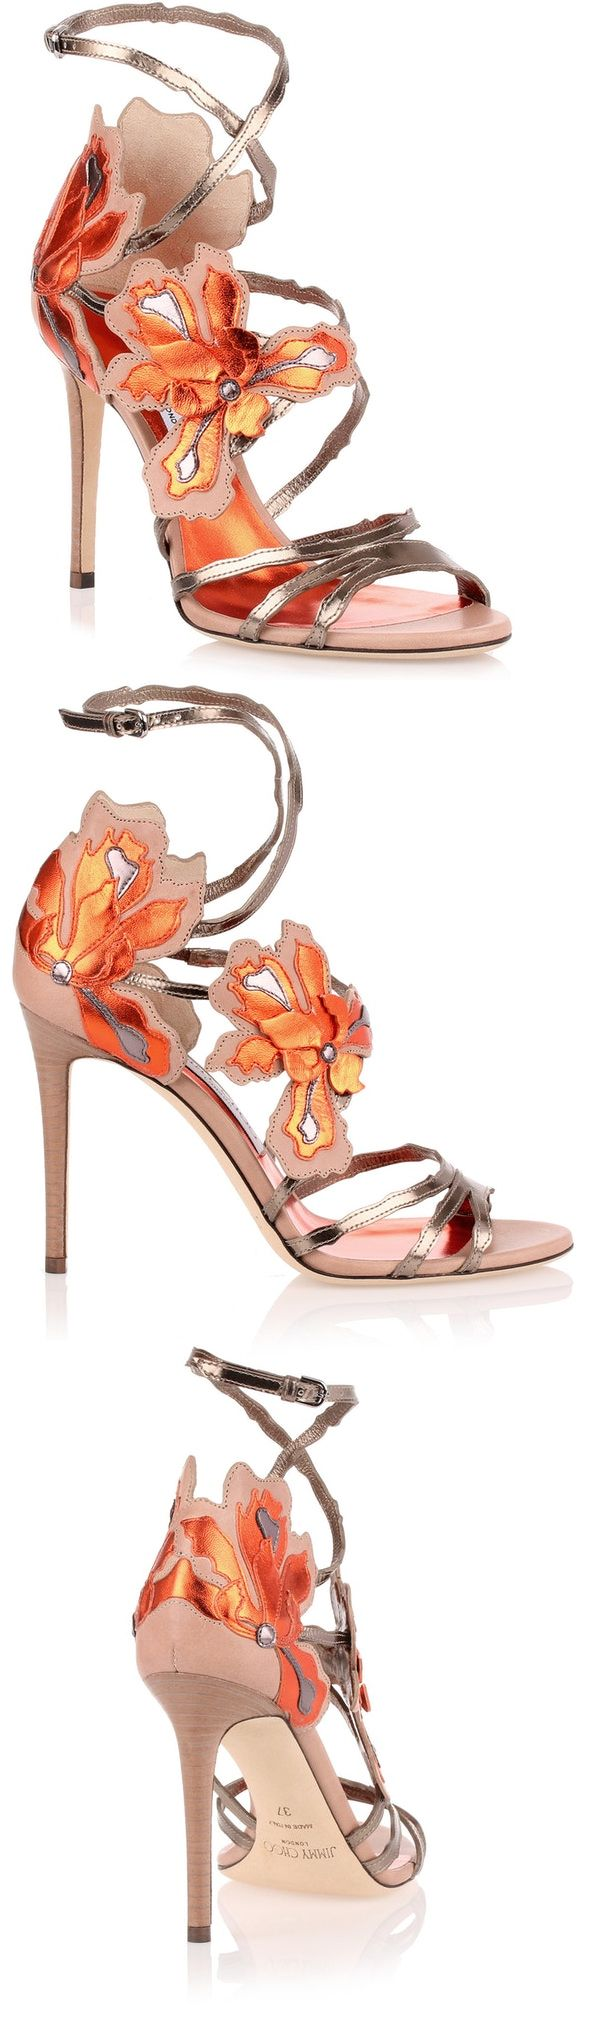 Jimmy Choo Lolita 100 orange metallic sandal strappy shoes. Metallic Silver leather sandal with orange flame tonal flower details. The Lolita has stiletto heel, and an adjustable ankle strap with 'branch cutwork shapes' detailing. Leather sole. Made in Italy. Pop Orange Tonal Colours on Silver. Great with Nude Outfits, Orange Outfits, or as a colour pop with Grey Silver. #racingfashion #fashion #shoes #shoesday #affiliatelink #fashionsonthefield #colourpop #wearorange